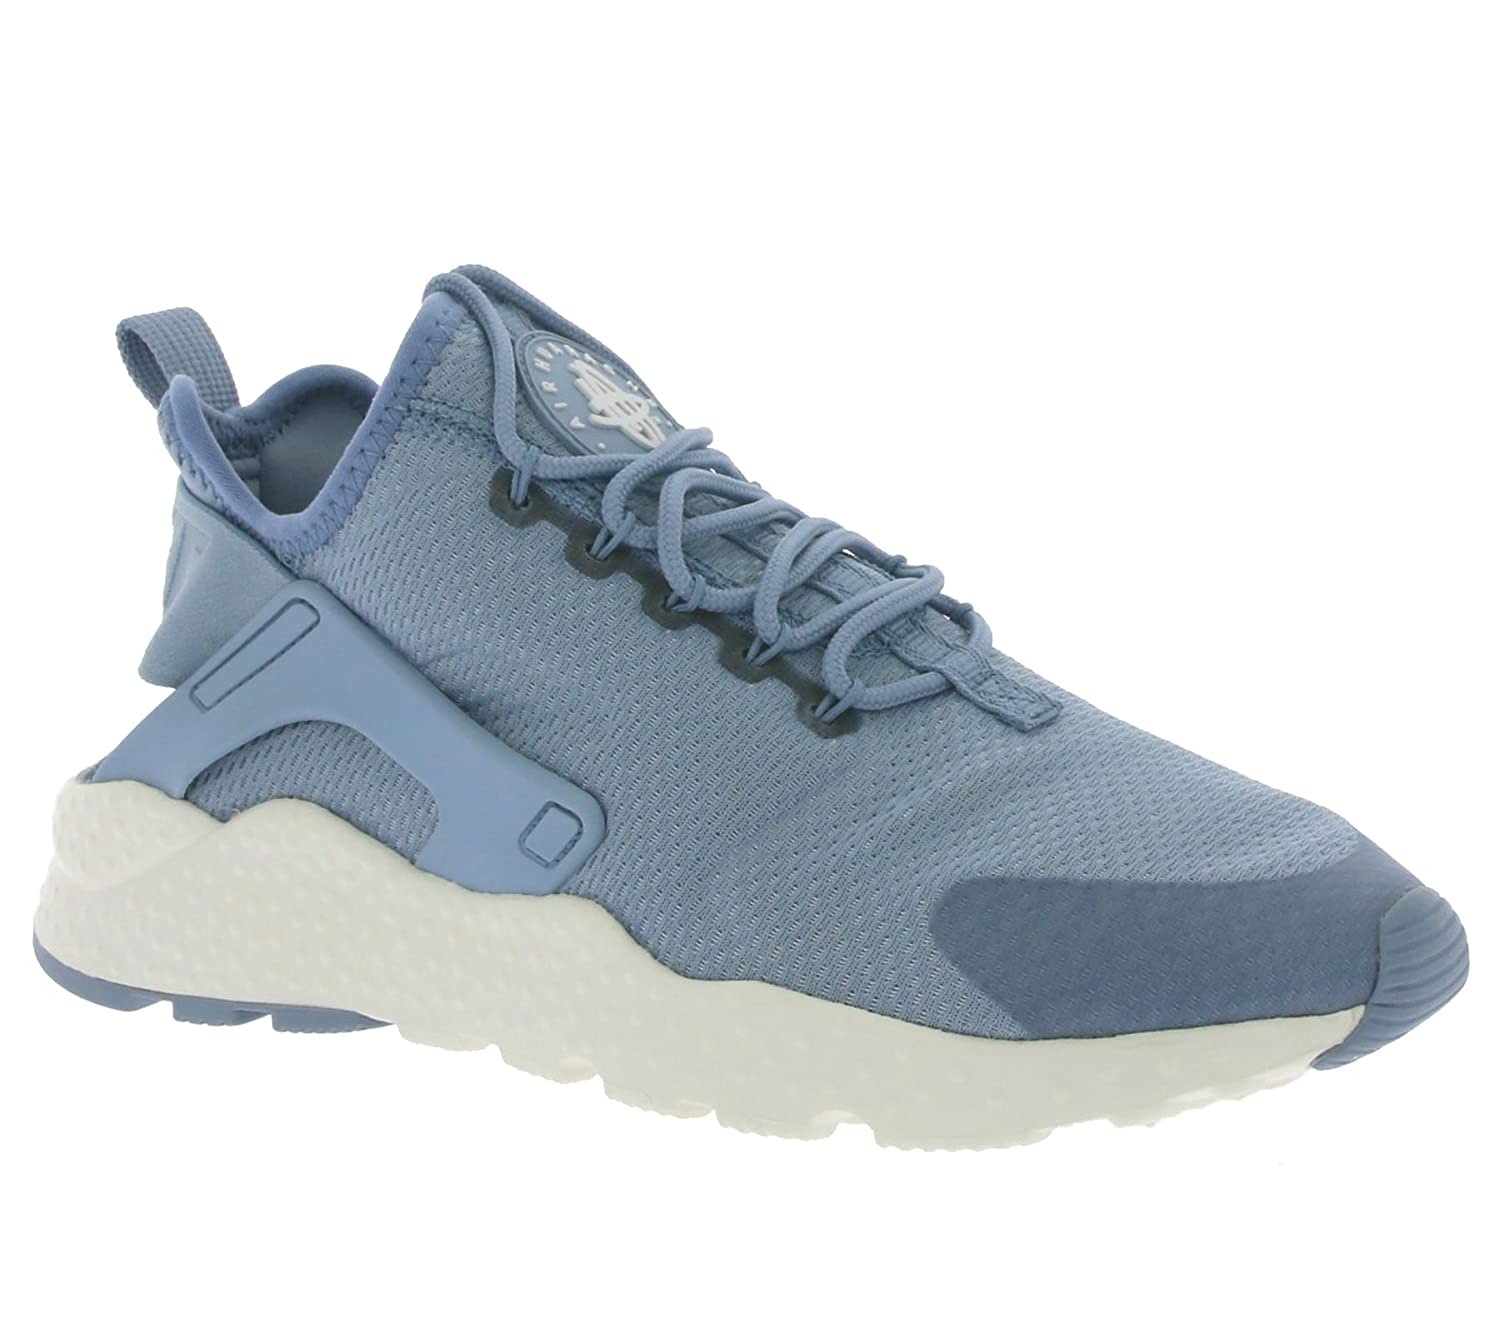 Nike Damne Air Huarache Ultra Run Schuhe Premium, Schuhe Run Blau (402) fd1958